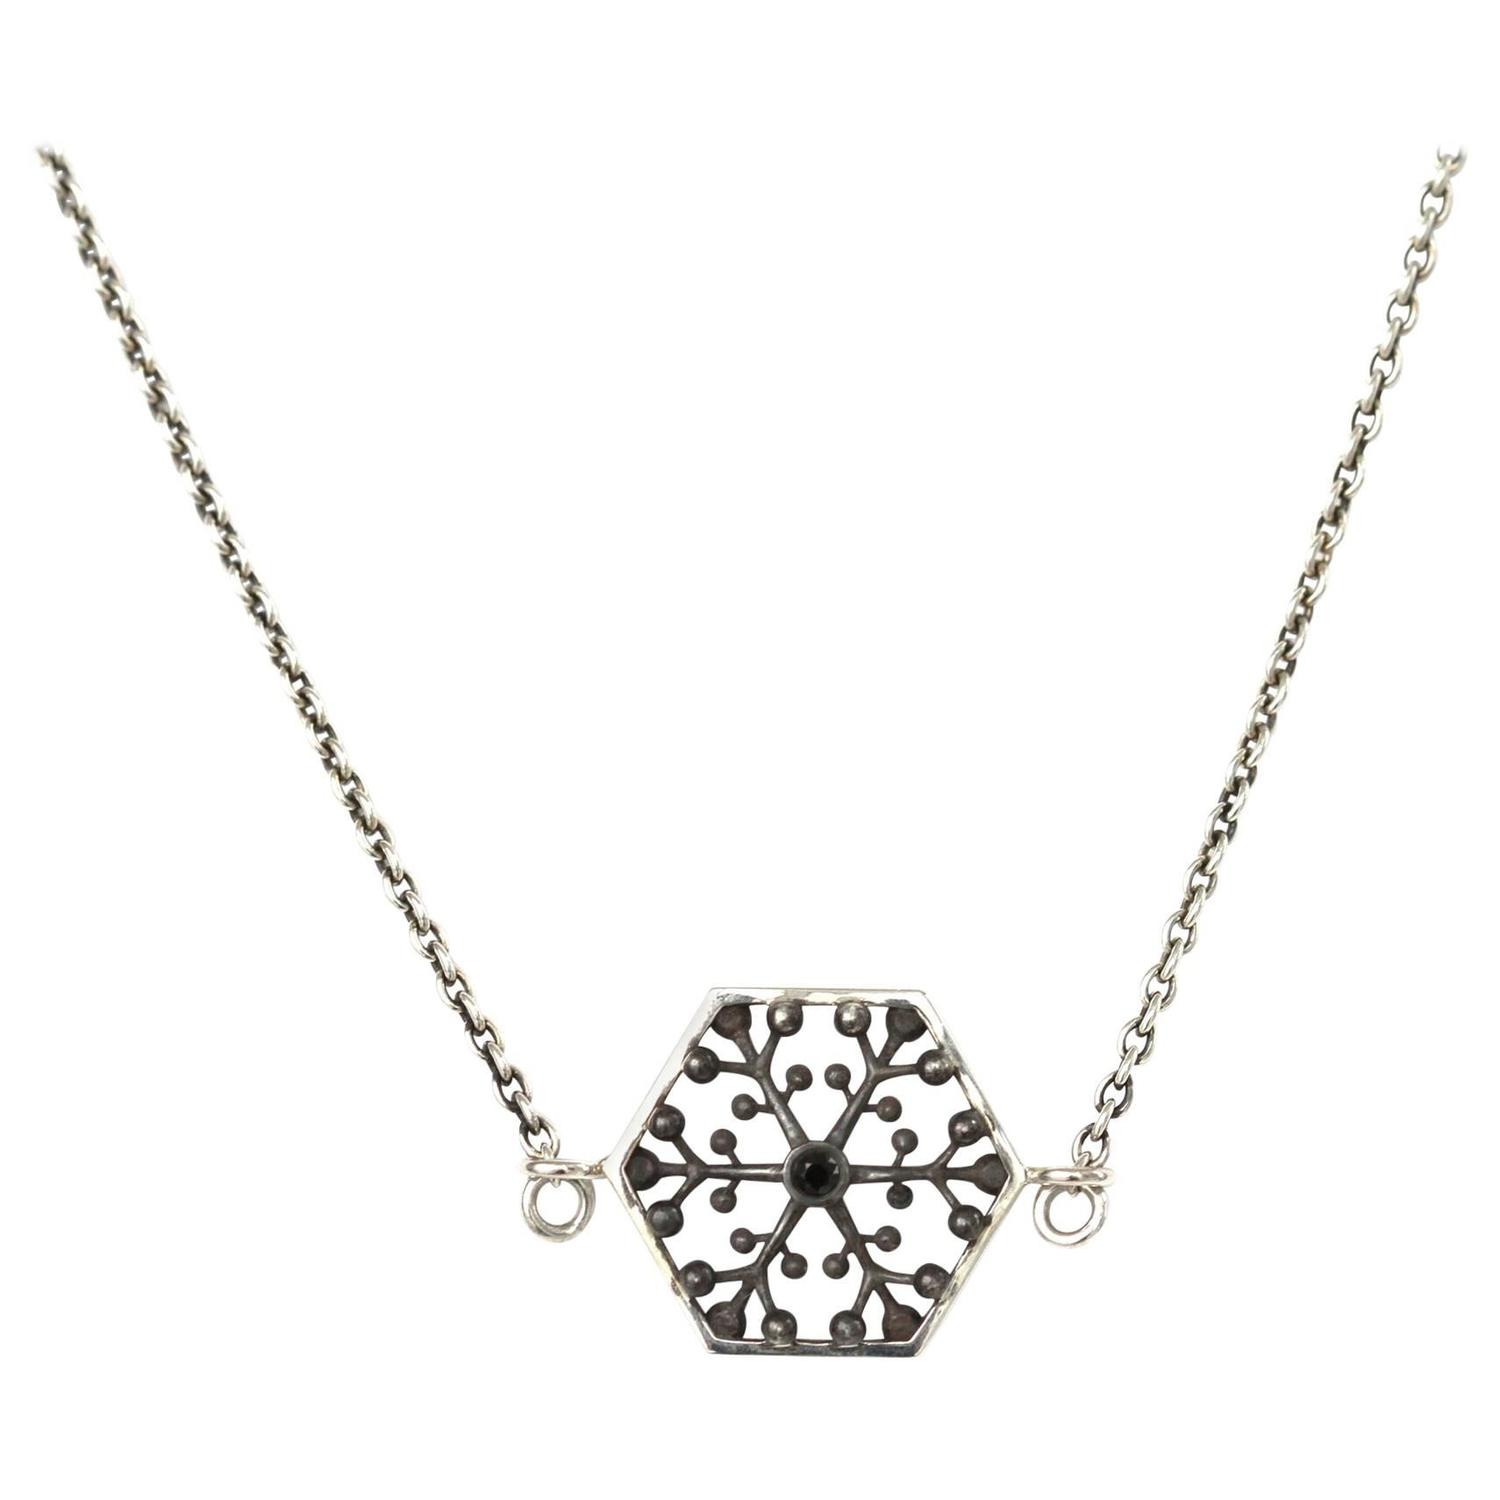 John Brevard Snowflakes Independence Silver Necklace MhedAqd3t